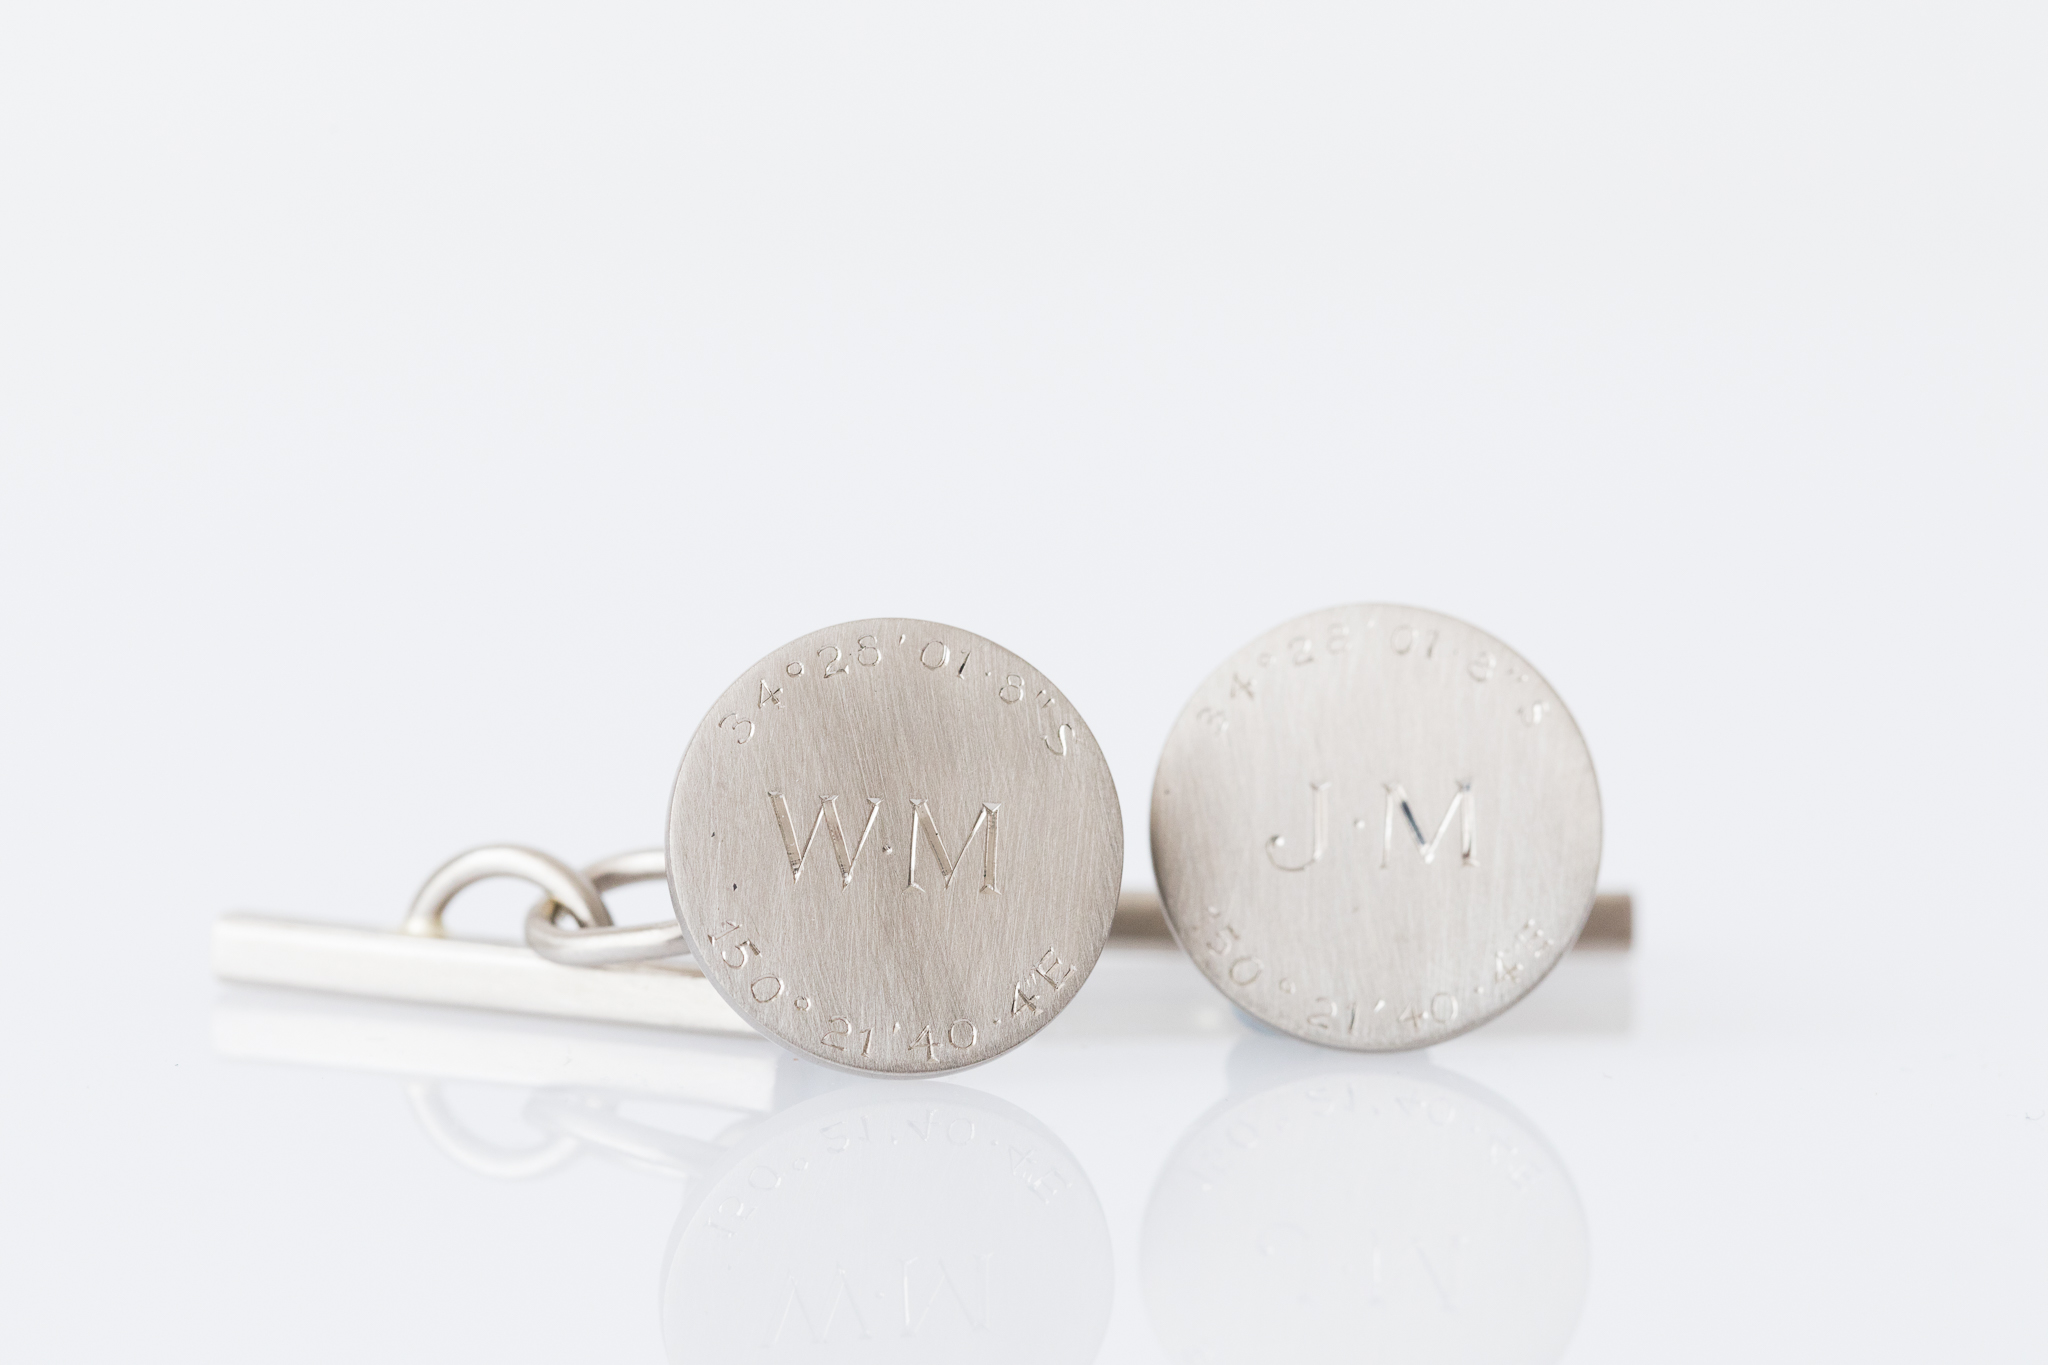 Handmade cufflinks make a beautiful heirloom gift for a first anniversary, like this bespoke set created for Bill.